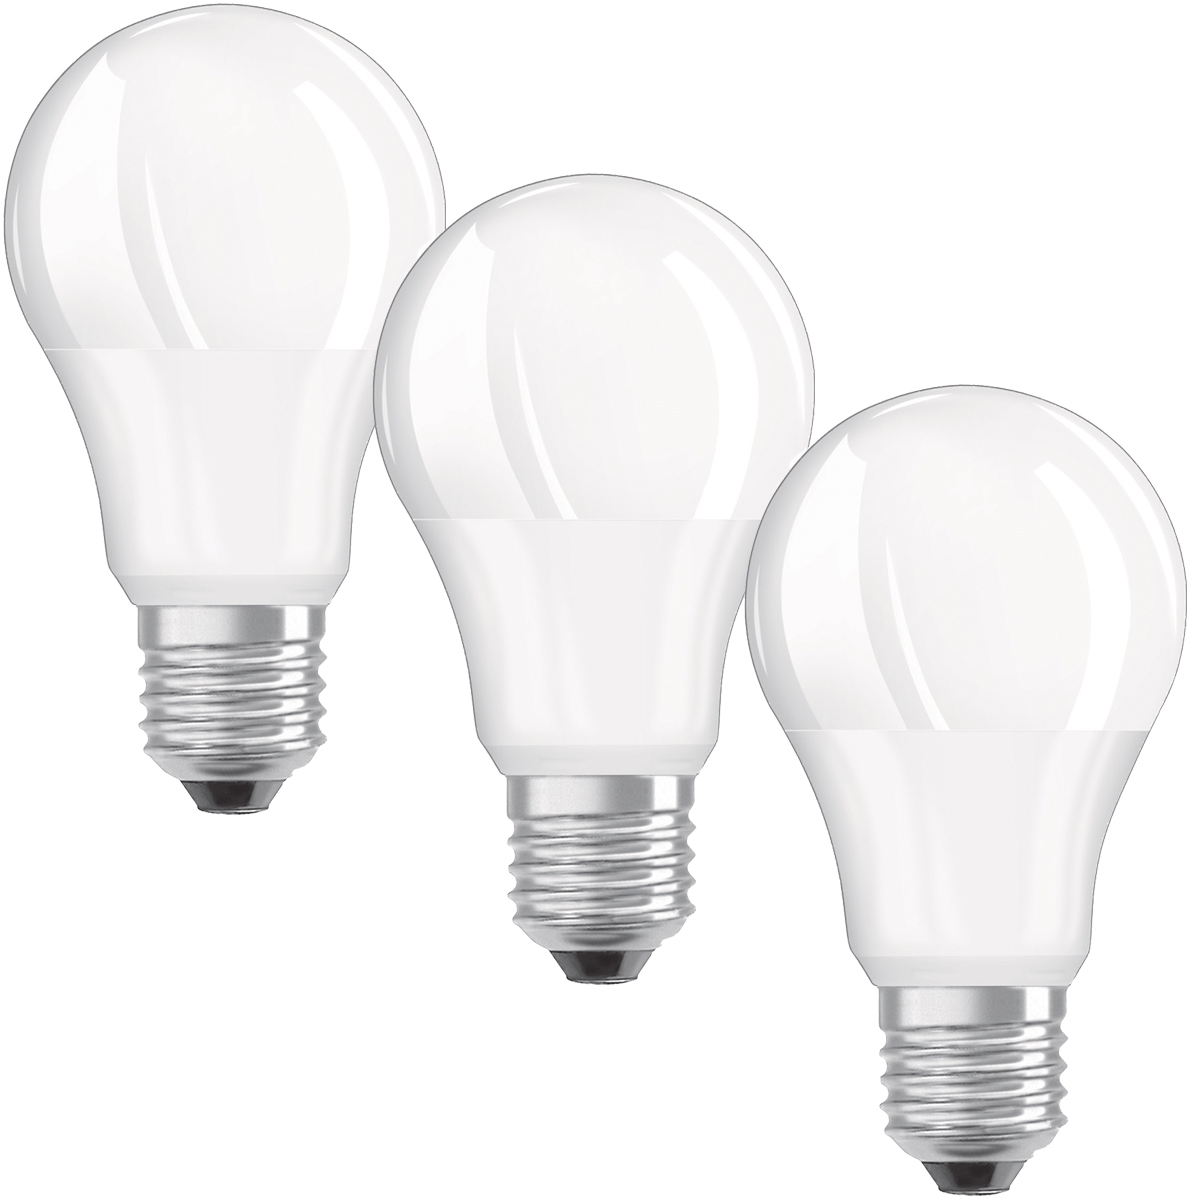 OSRAM LED VALUE CLASSIC A 75 E27 MATT 10W=75W 1055lm Neutralweiß 4000K nodim 3er